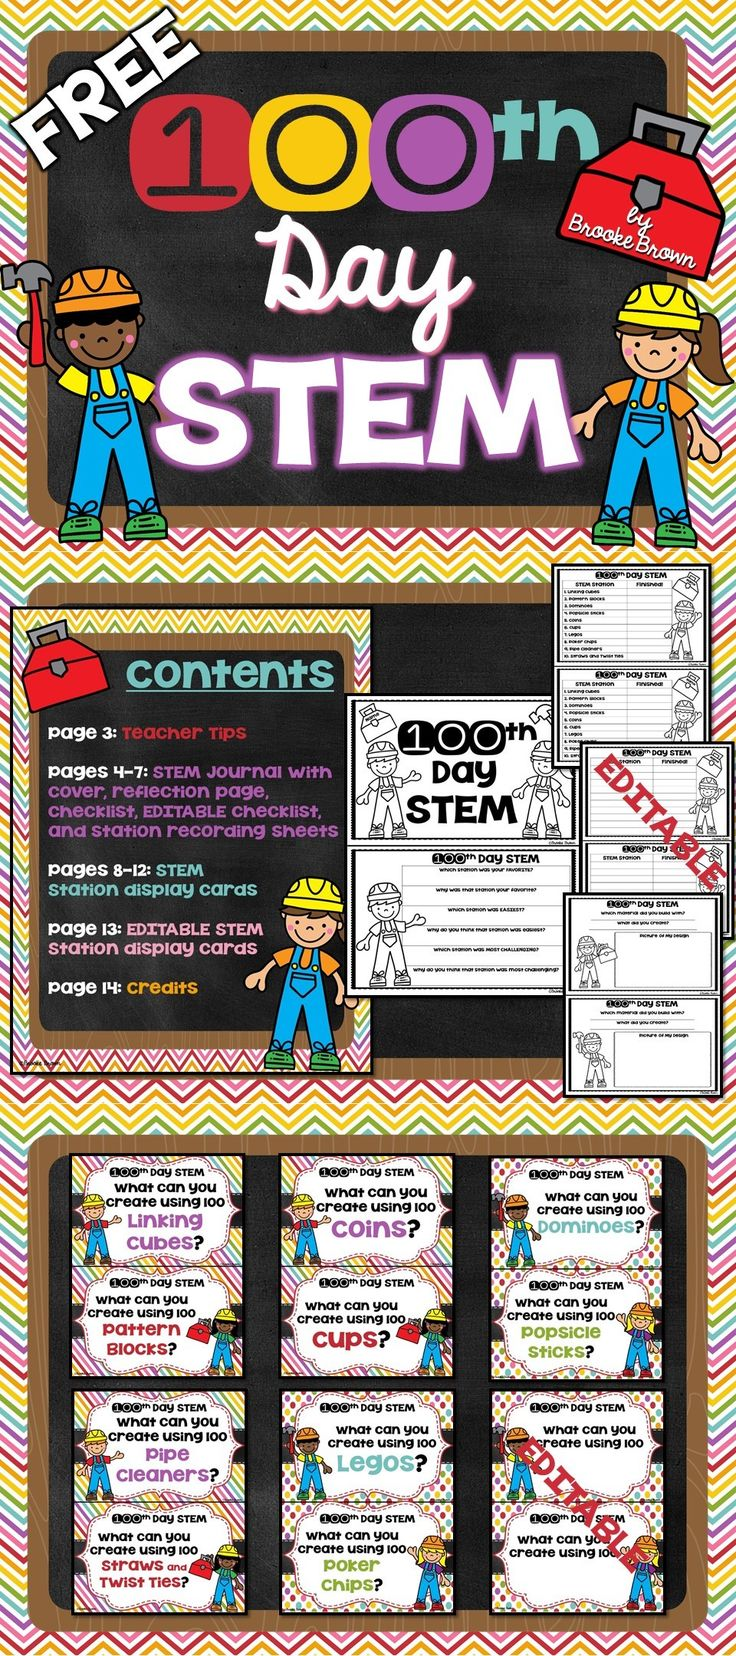 FREE 100th Day of School Elementary STEM Stations for PreK, 1st Grade, 2nd Grade, and 3rd Grade! | STEM Challenges | STEM Activities